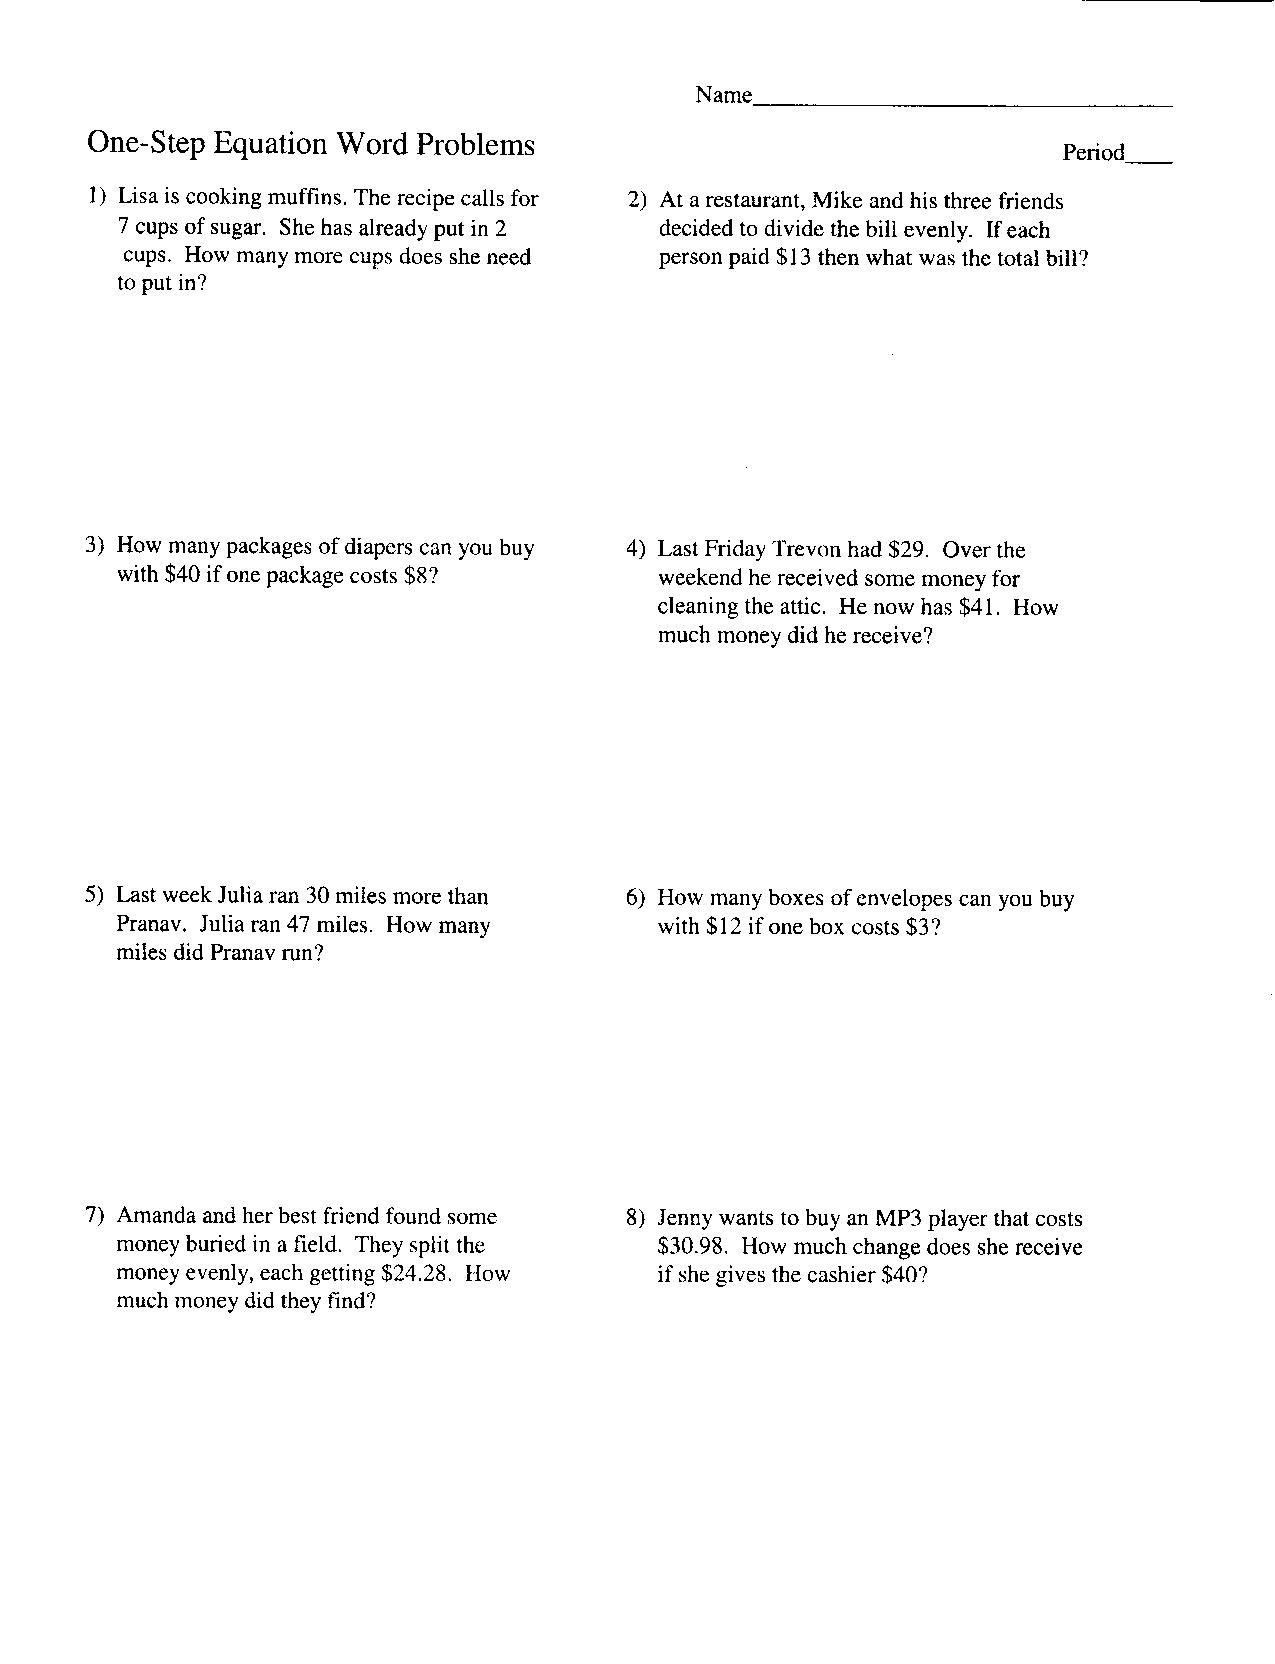 two step equations worksheet pdf as well as 2 step equation word problems worksheets worksheets for all of two step equations worksheet pdf